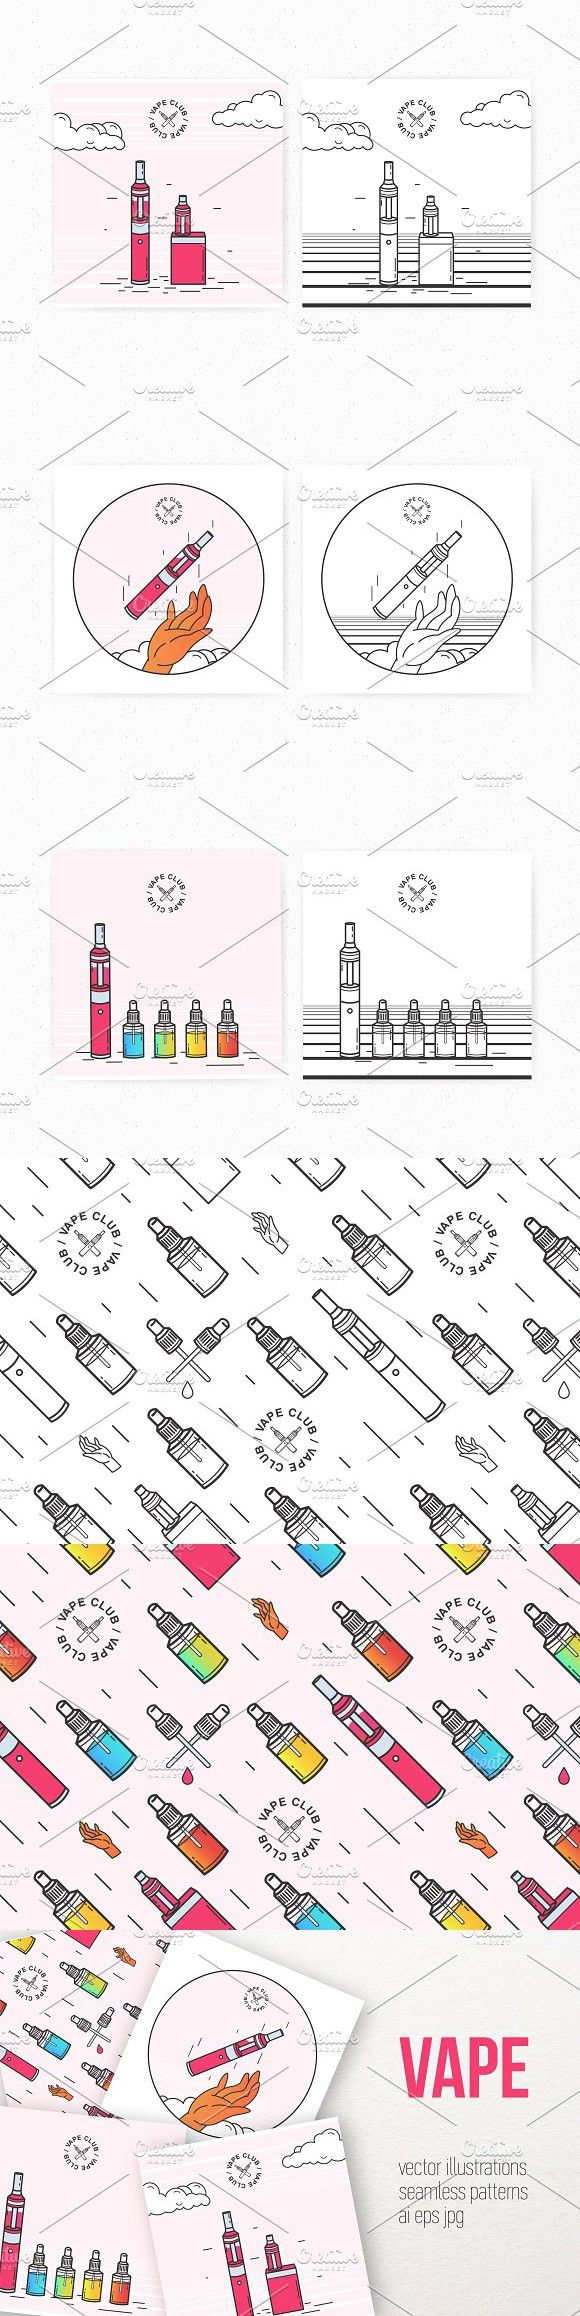 Bundle and pattern with vape devices #advertising #battery